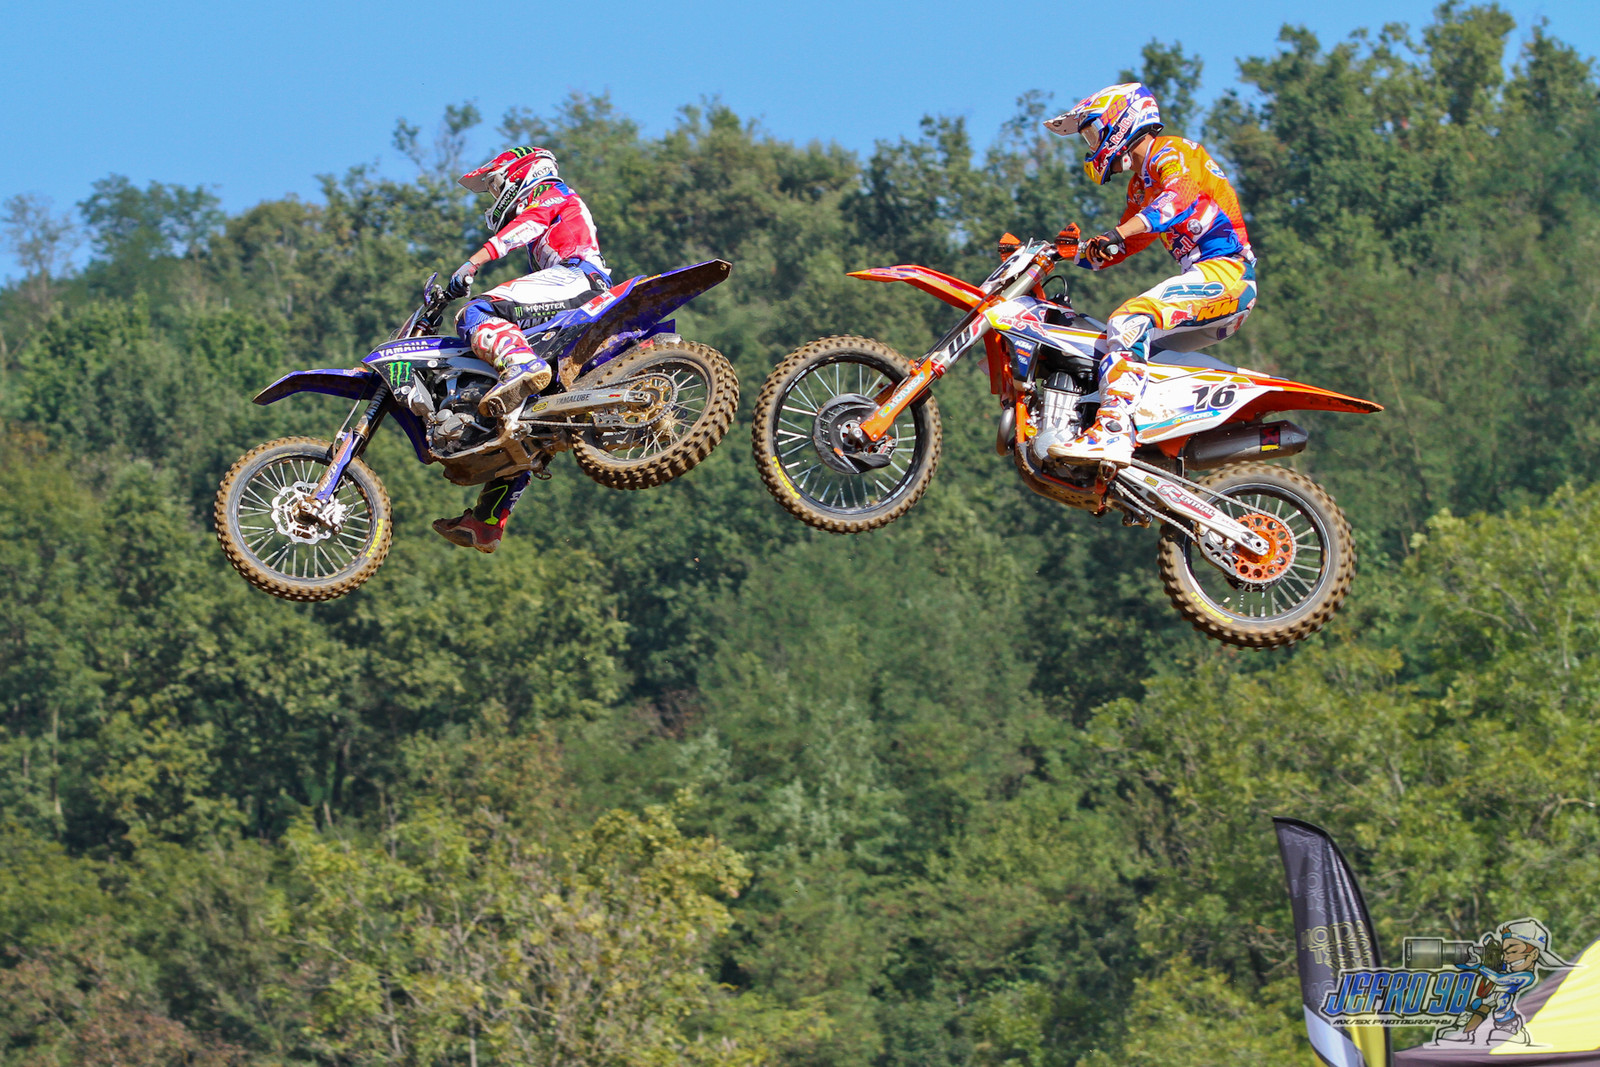 Romain Febvre vs Glenn Coldenhoff - PhotoGallery: MXoN Sunday - Motocross Pictures - Vital MX